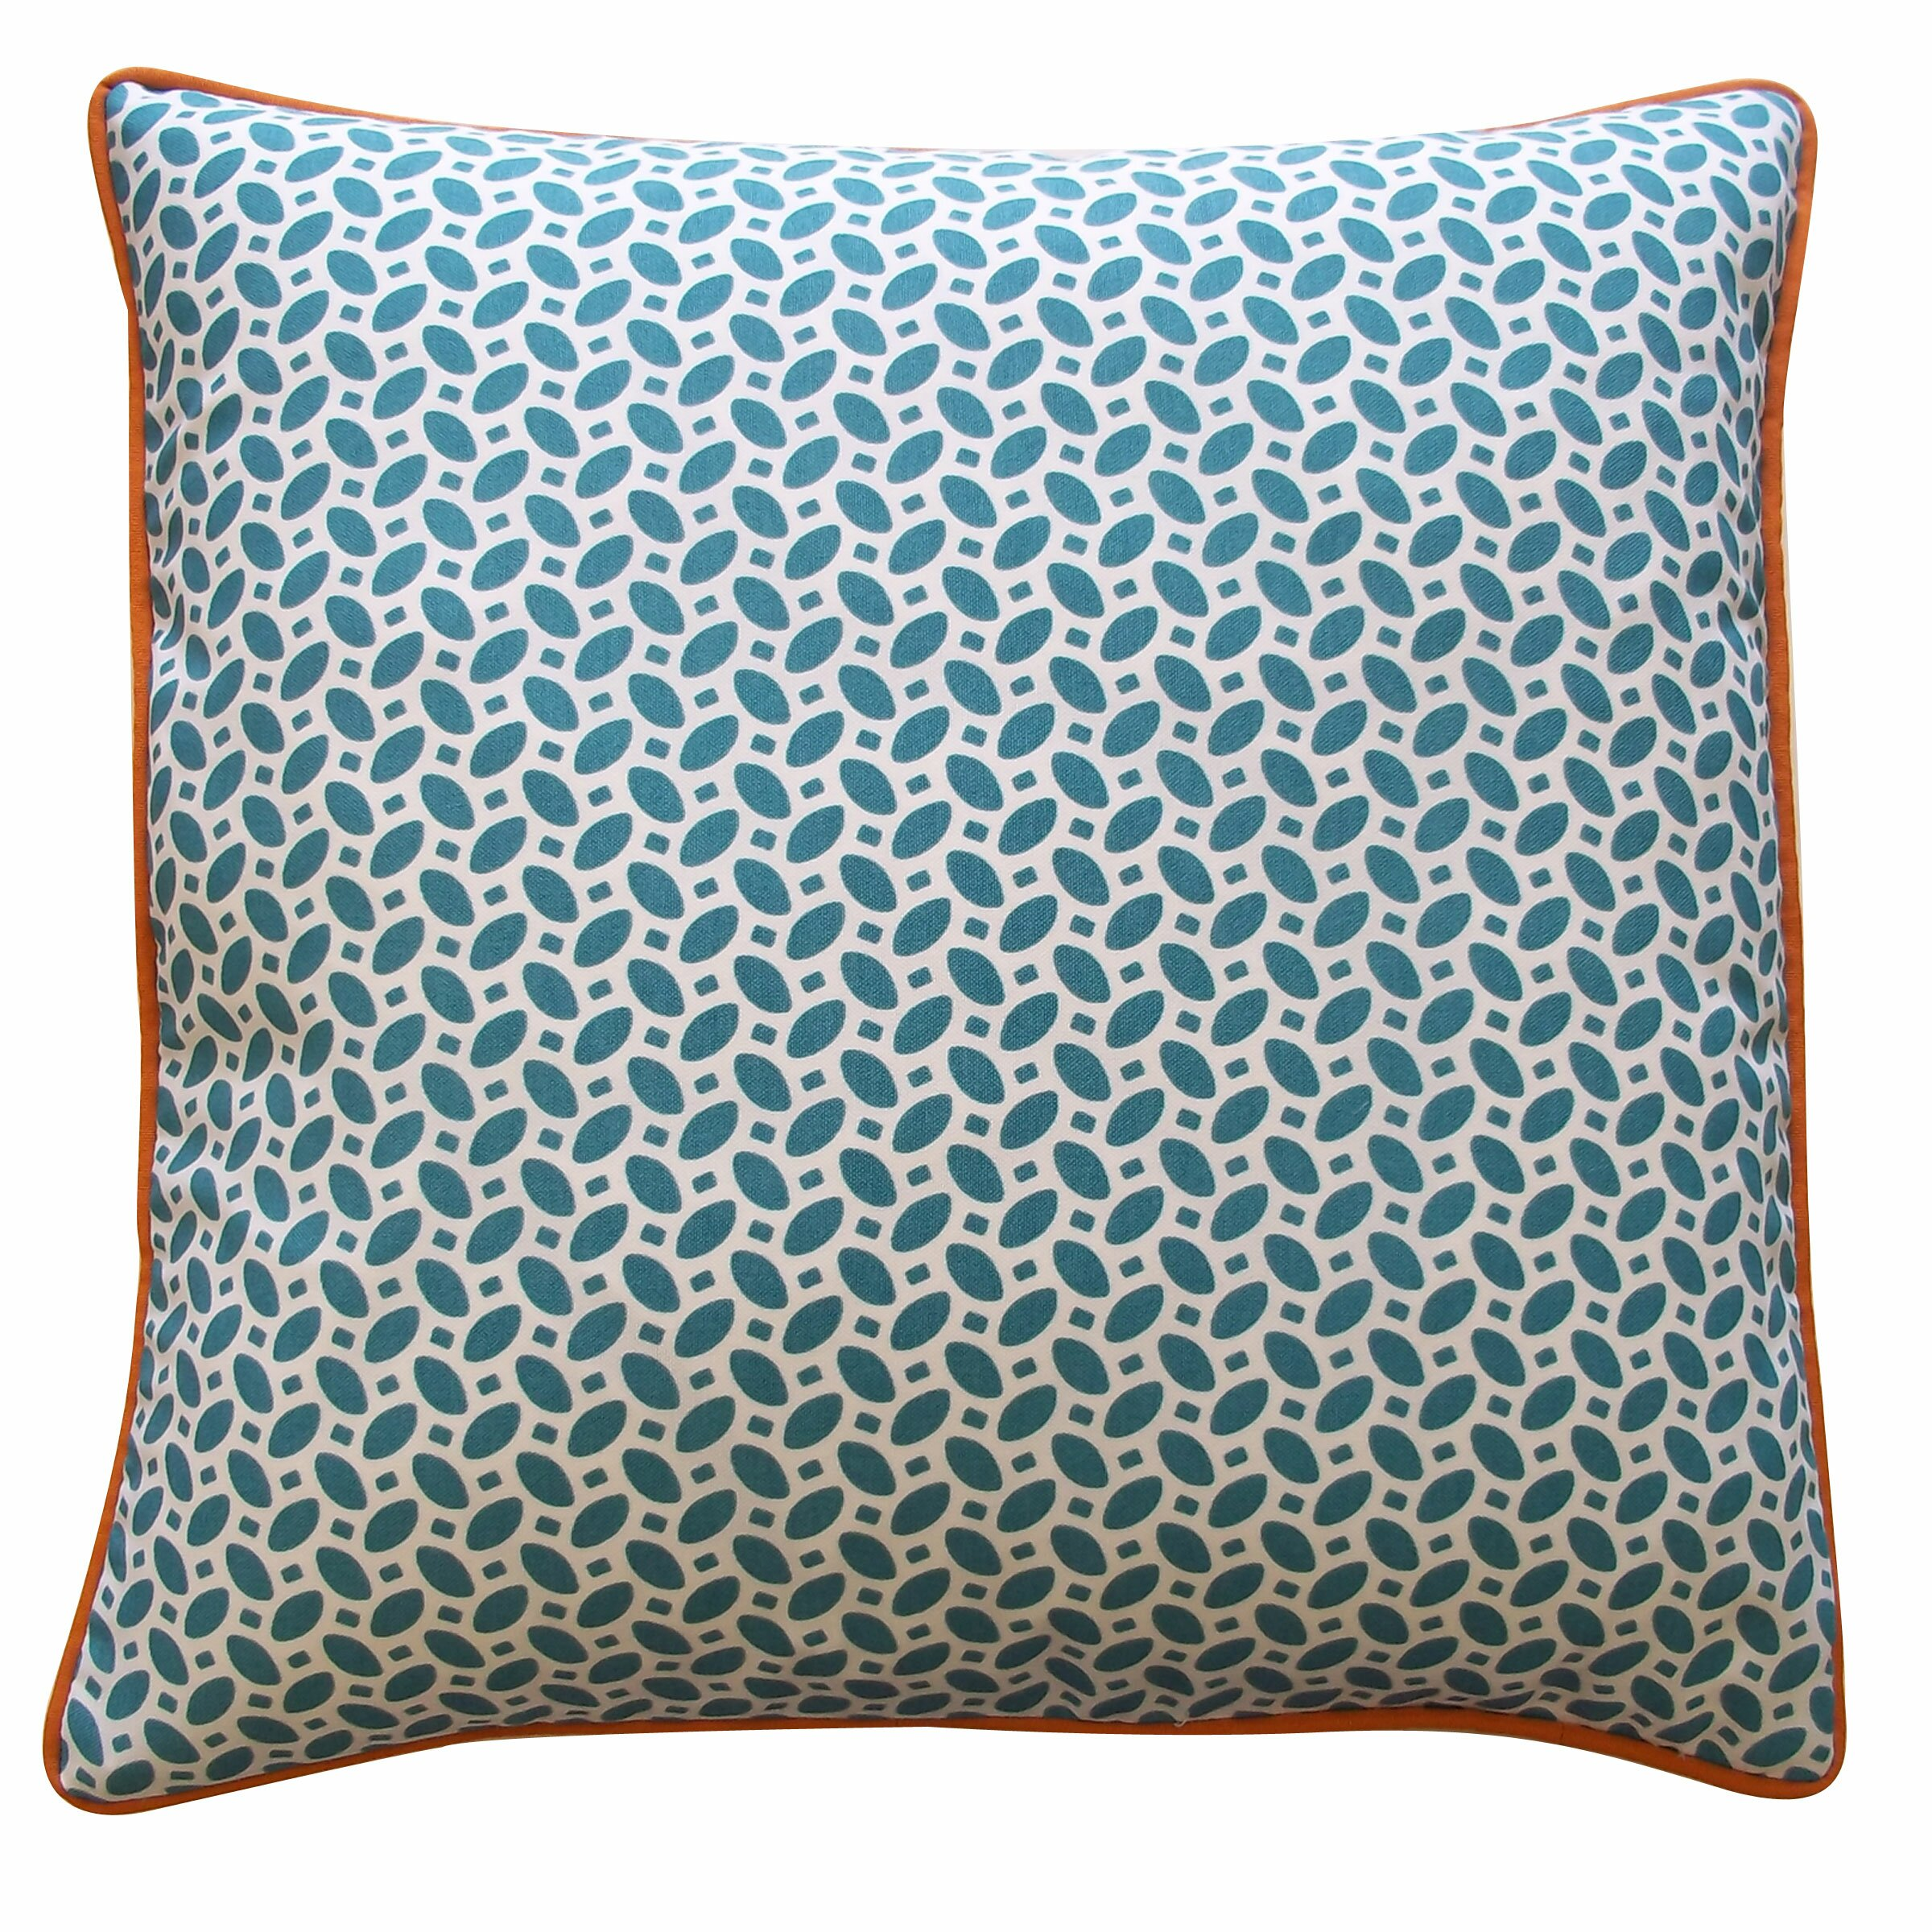 Throw Pillow Gallery : Varick Gallery Massey Outdoor Throw Pillow & Reviews Wayfair.ca